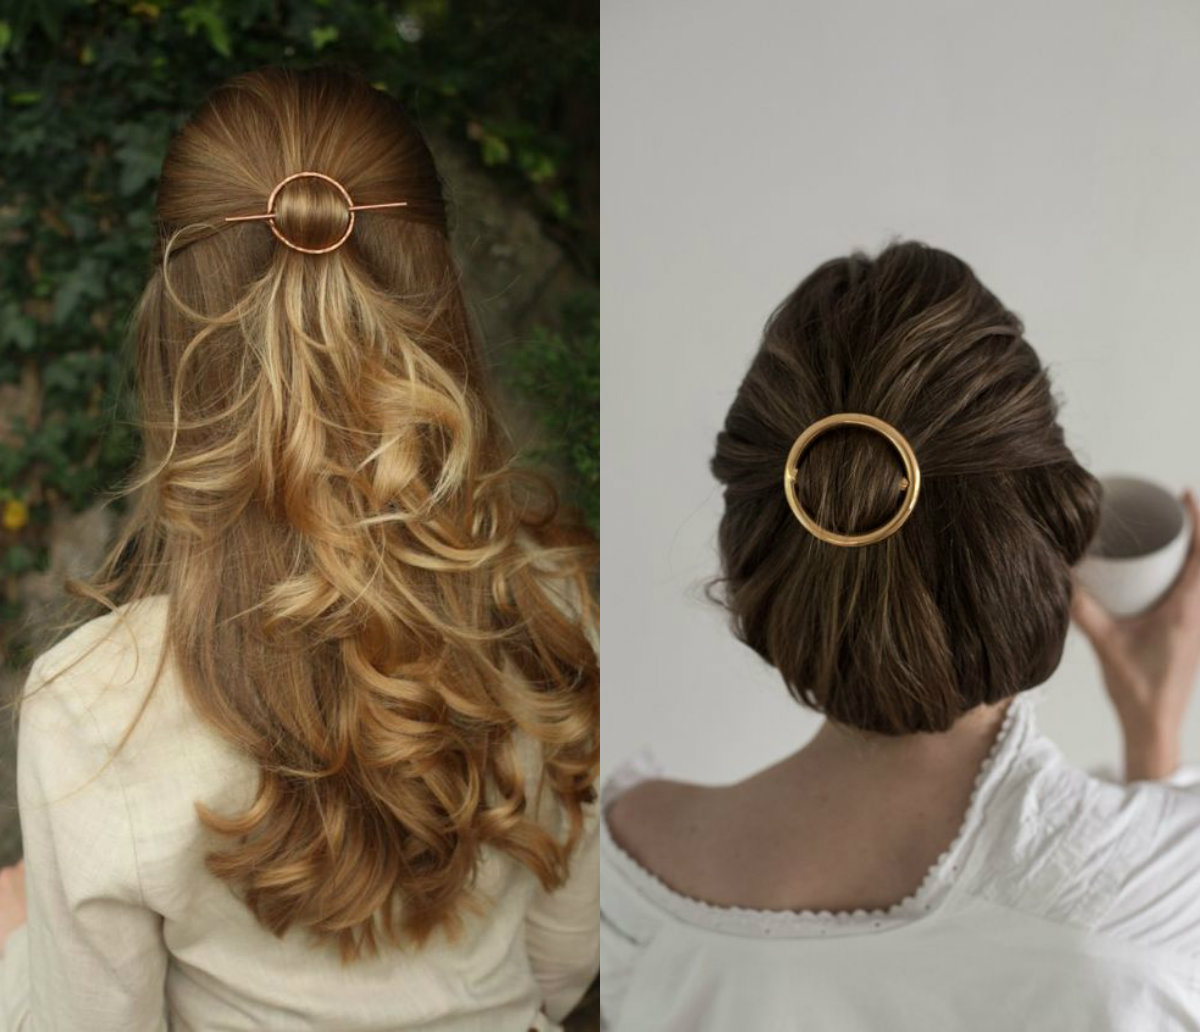 minimalist golden hair accessories for wedding 2018